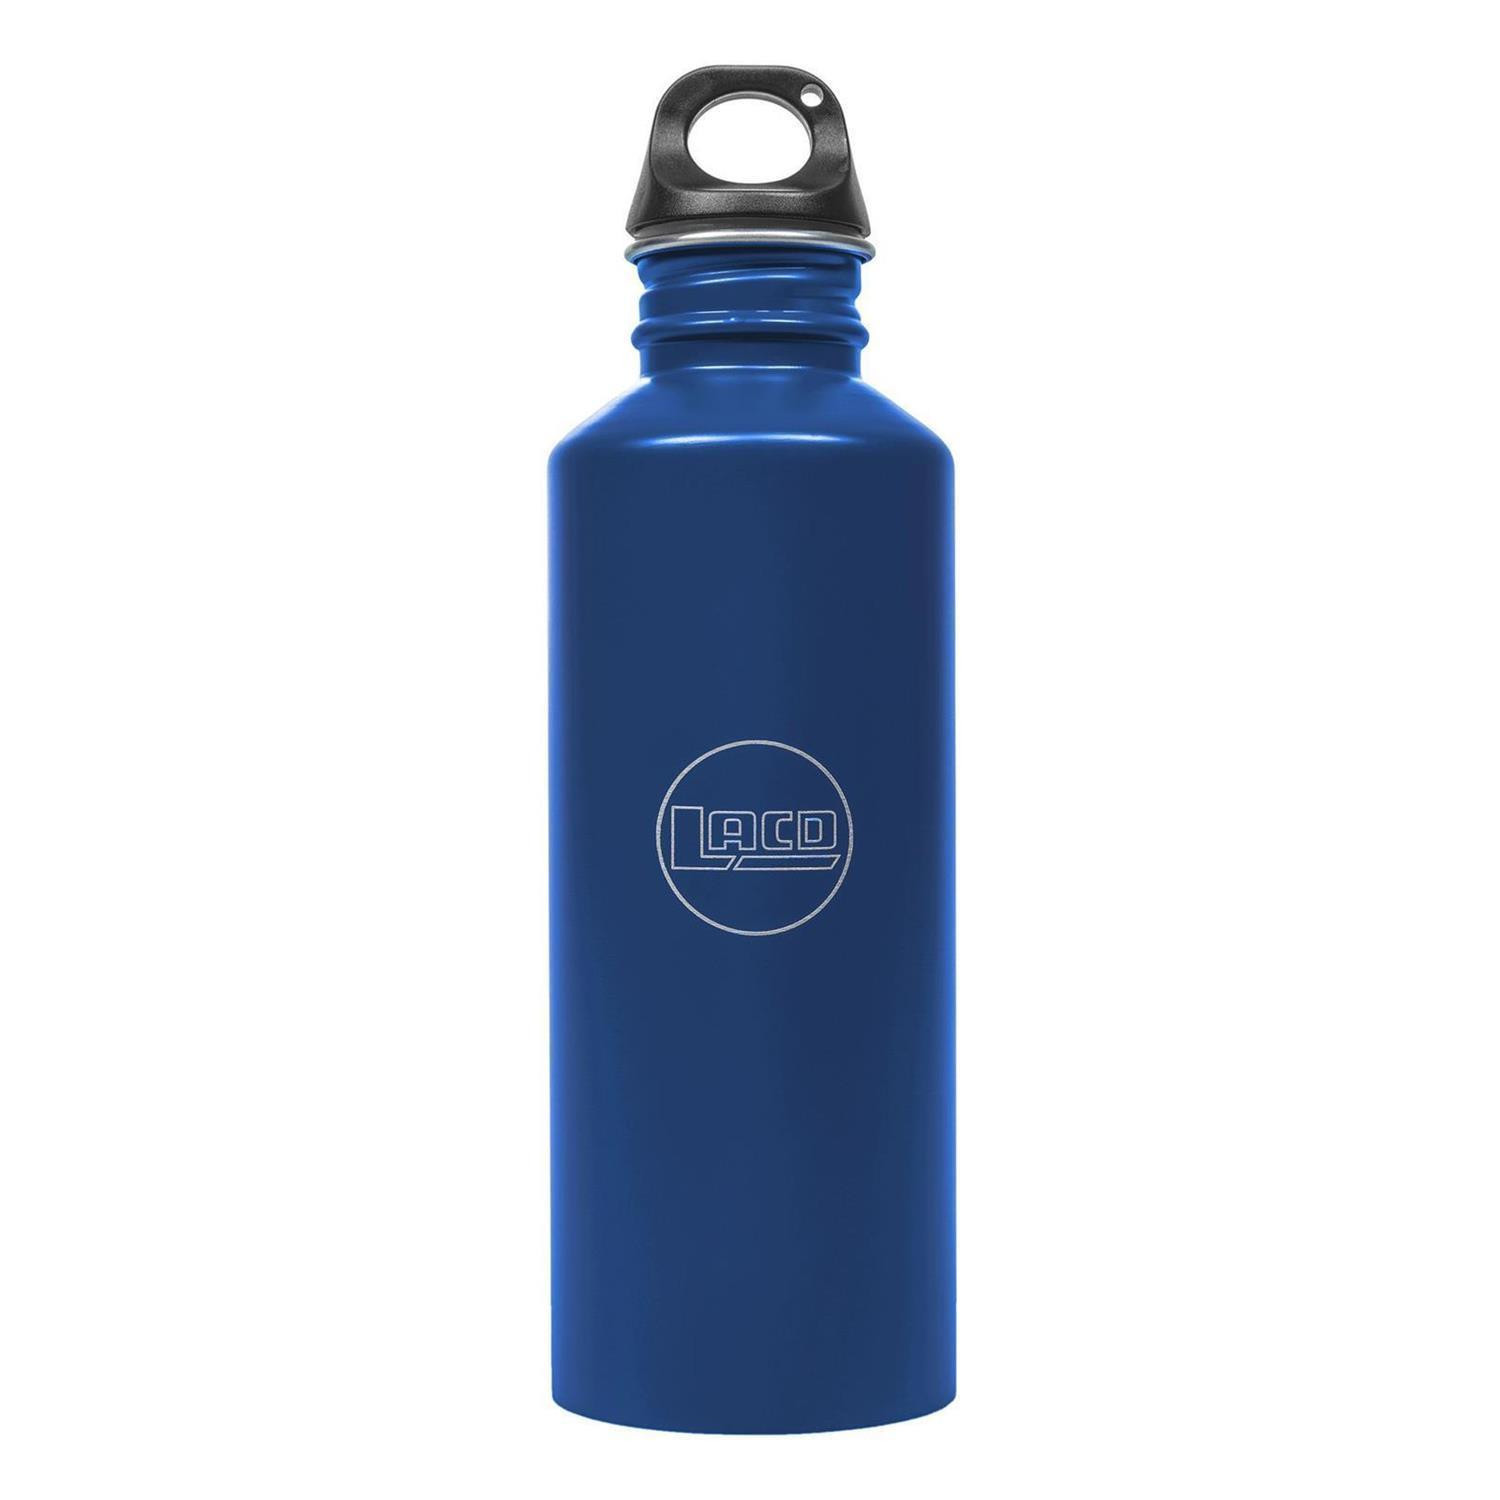 LACD Stainless Steel Bottle Evo 0,75 L